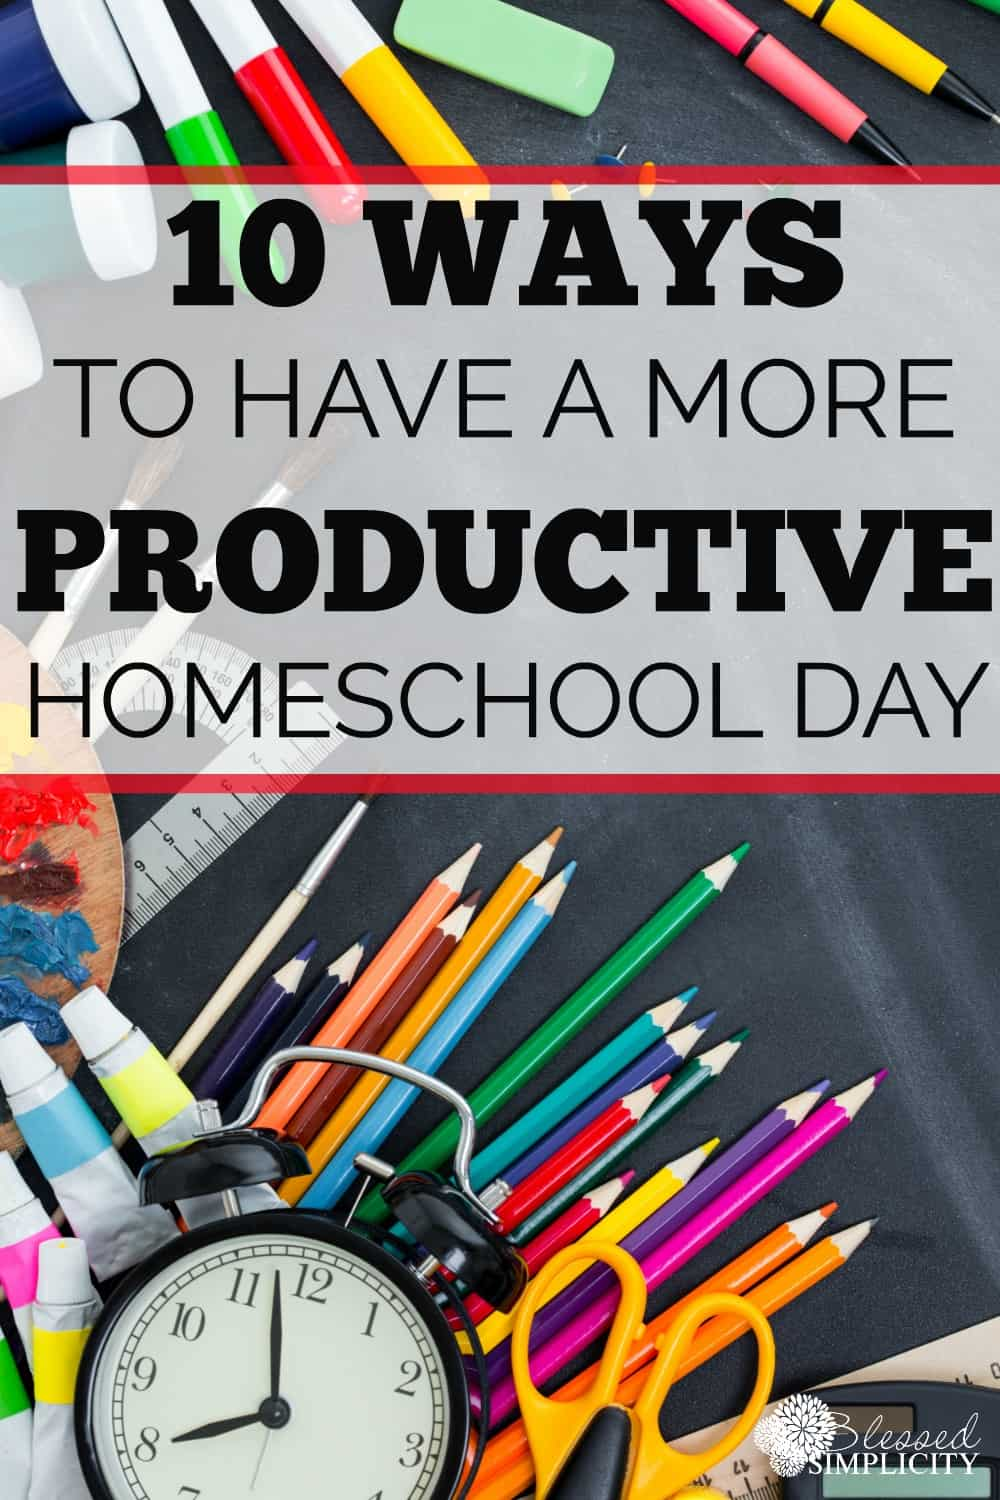 Ten great ways to have a more productive homeschool day, stay focused and accomplish your list!